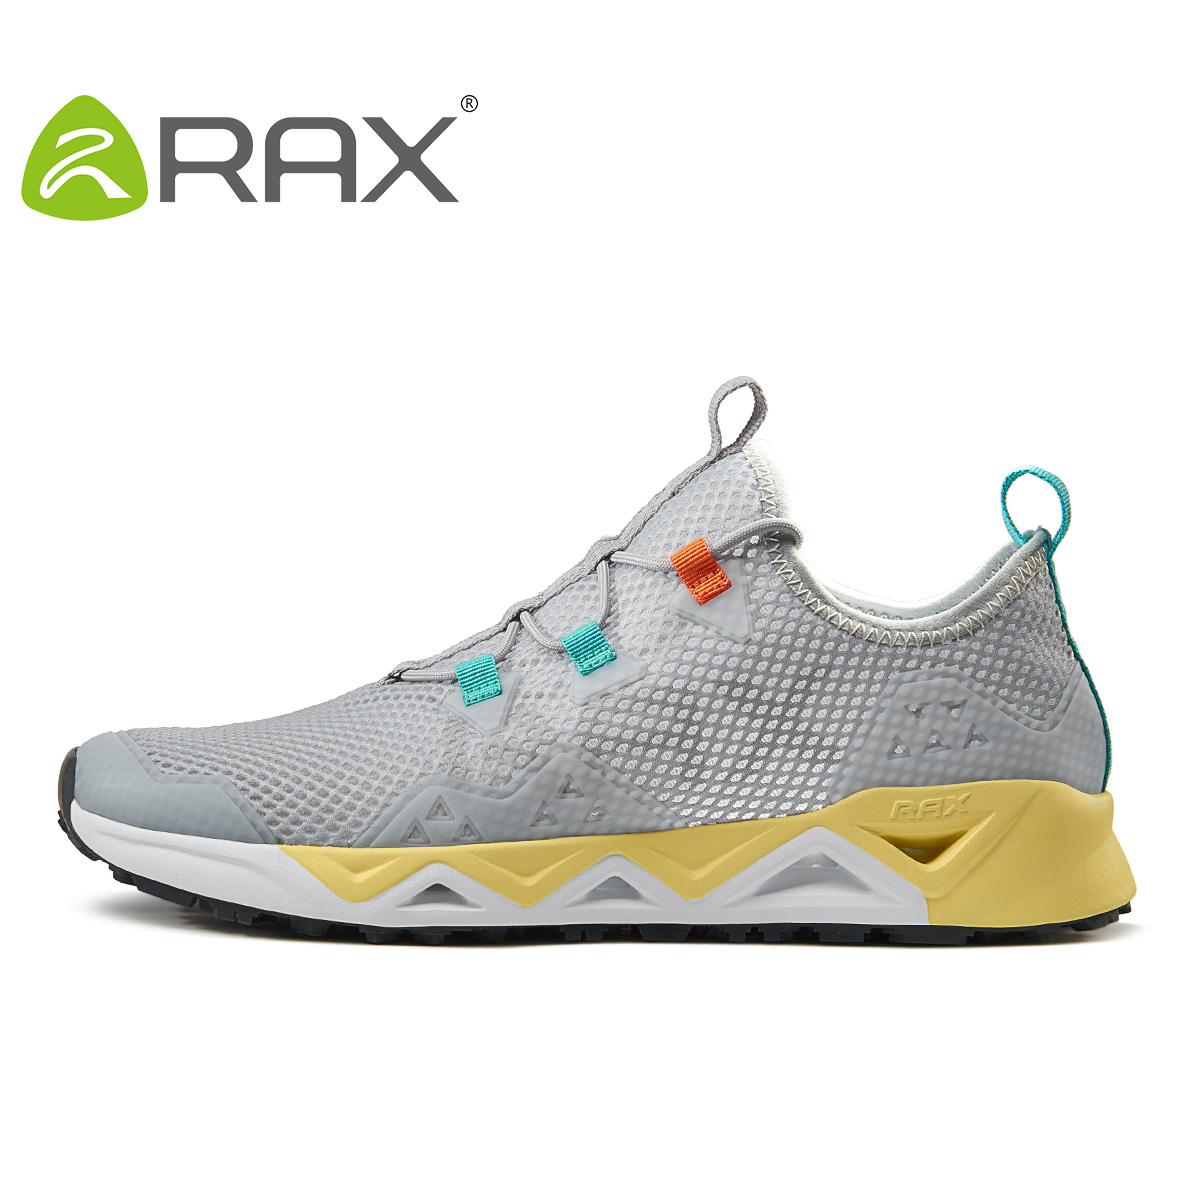 RAX Breathable Trekking Shoes Women men Summer Lightweight Hiking Shoes Men Ourdoor Walking Fishing Shoes Men WomenZapatos